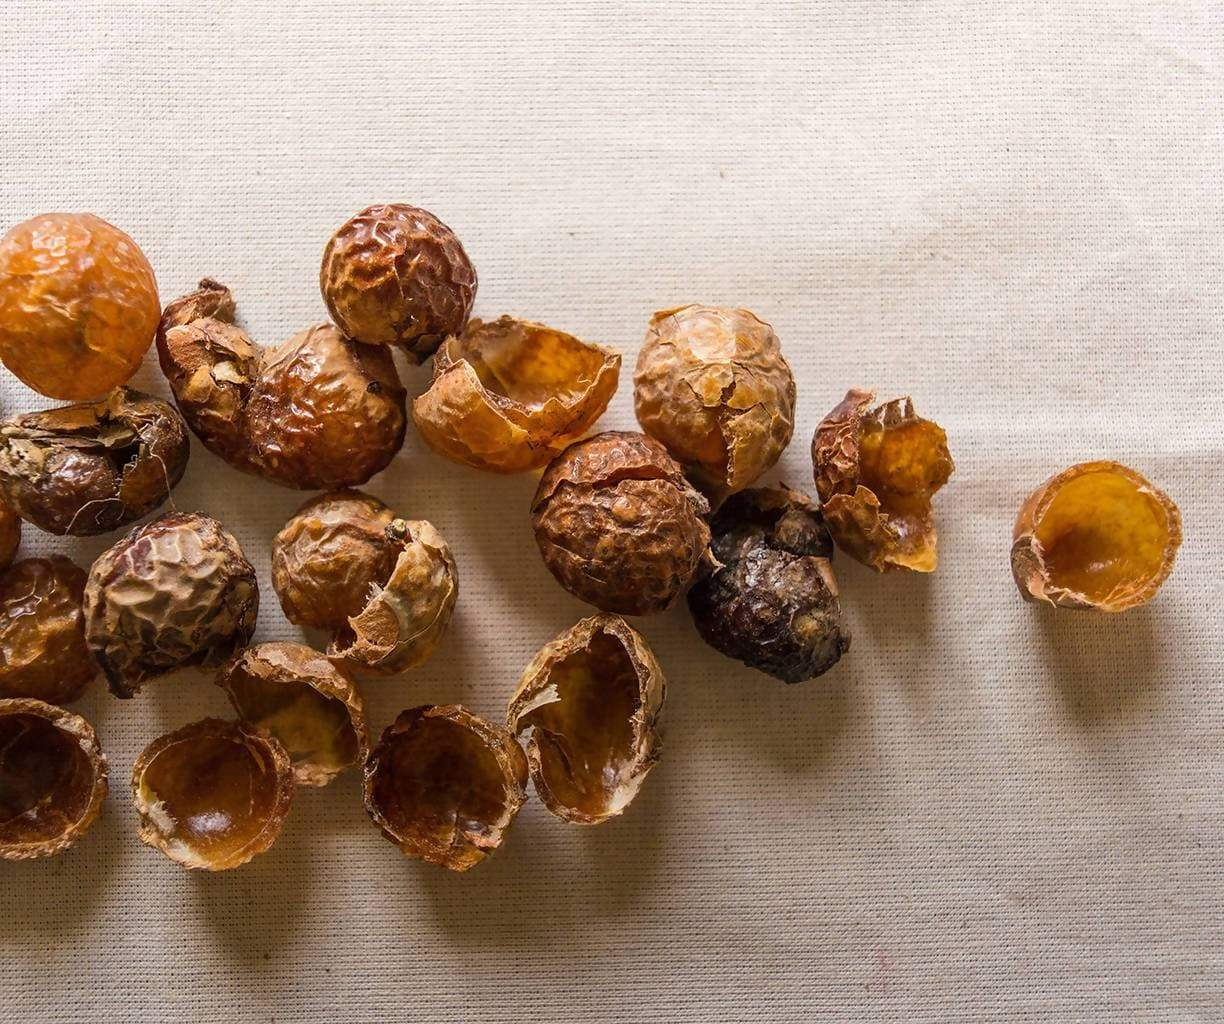 Loose Soapnut Shells